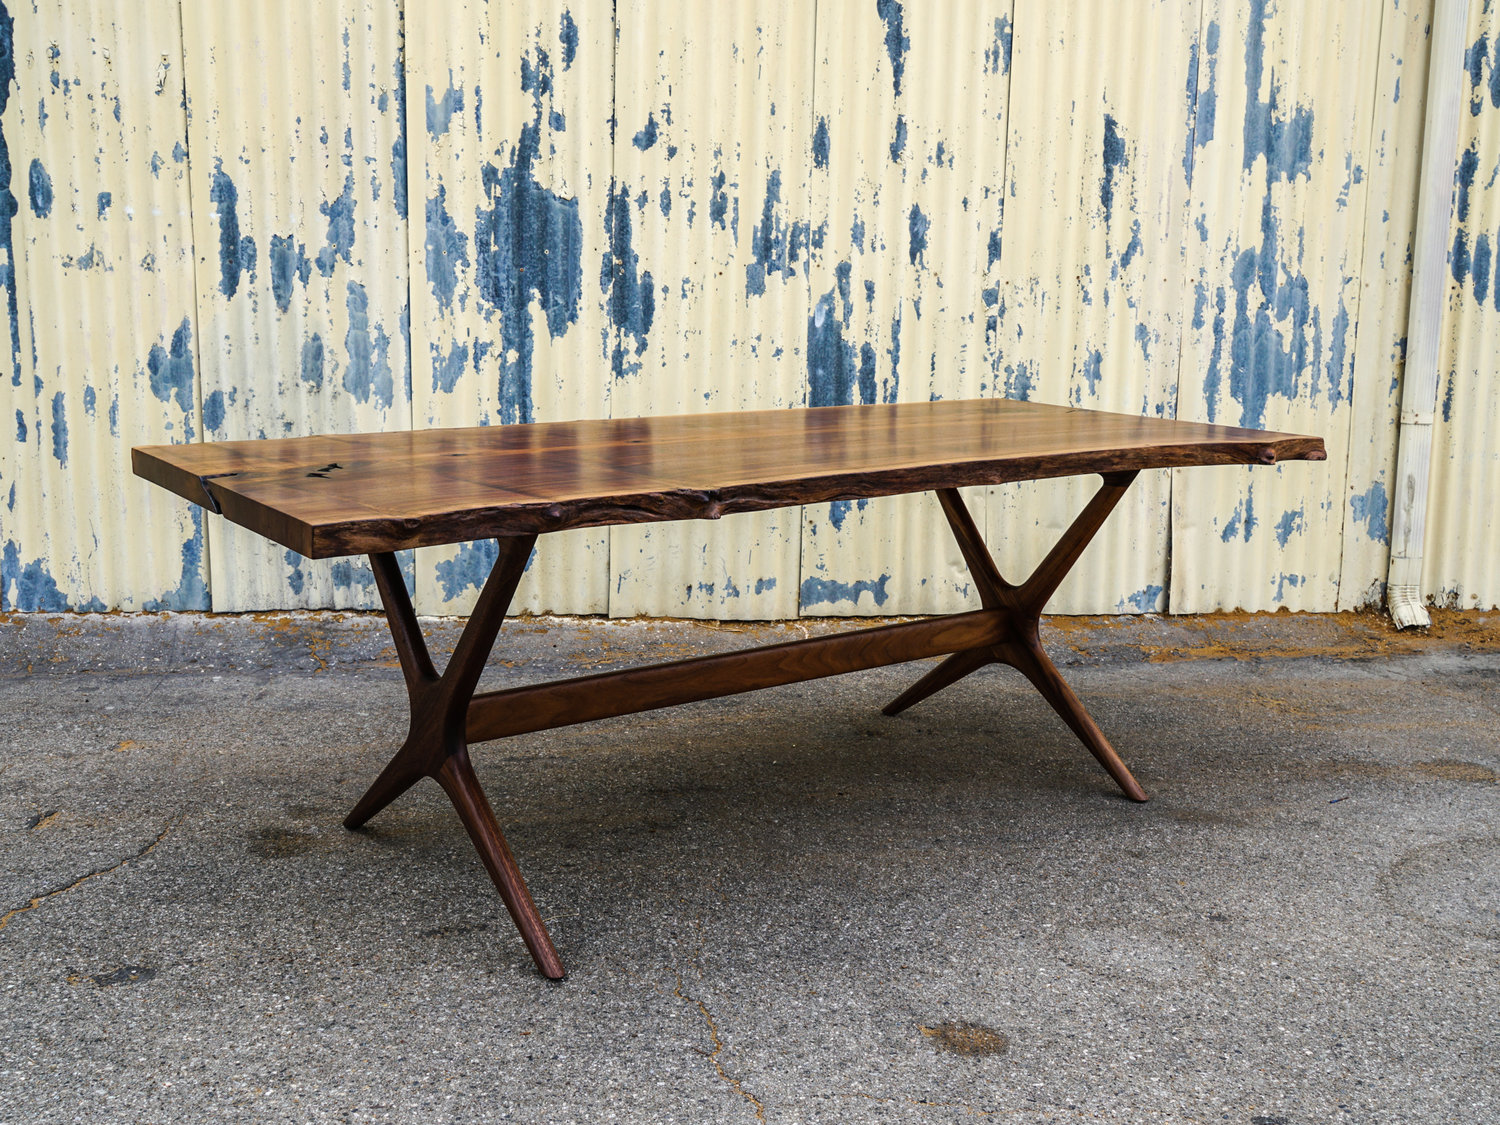 Atlas table and bench salsbury furniture atlas table and bench geotapseo Images